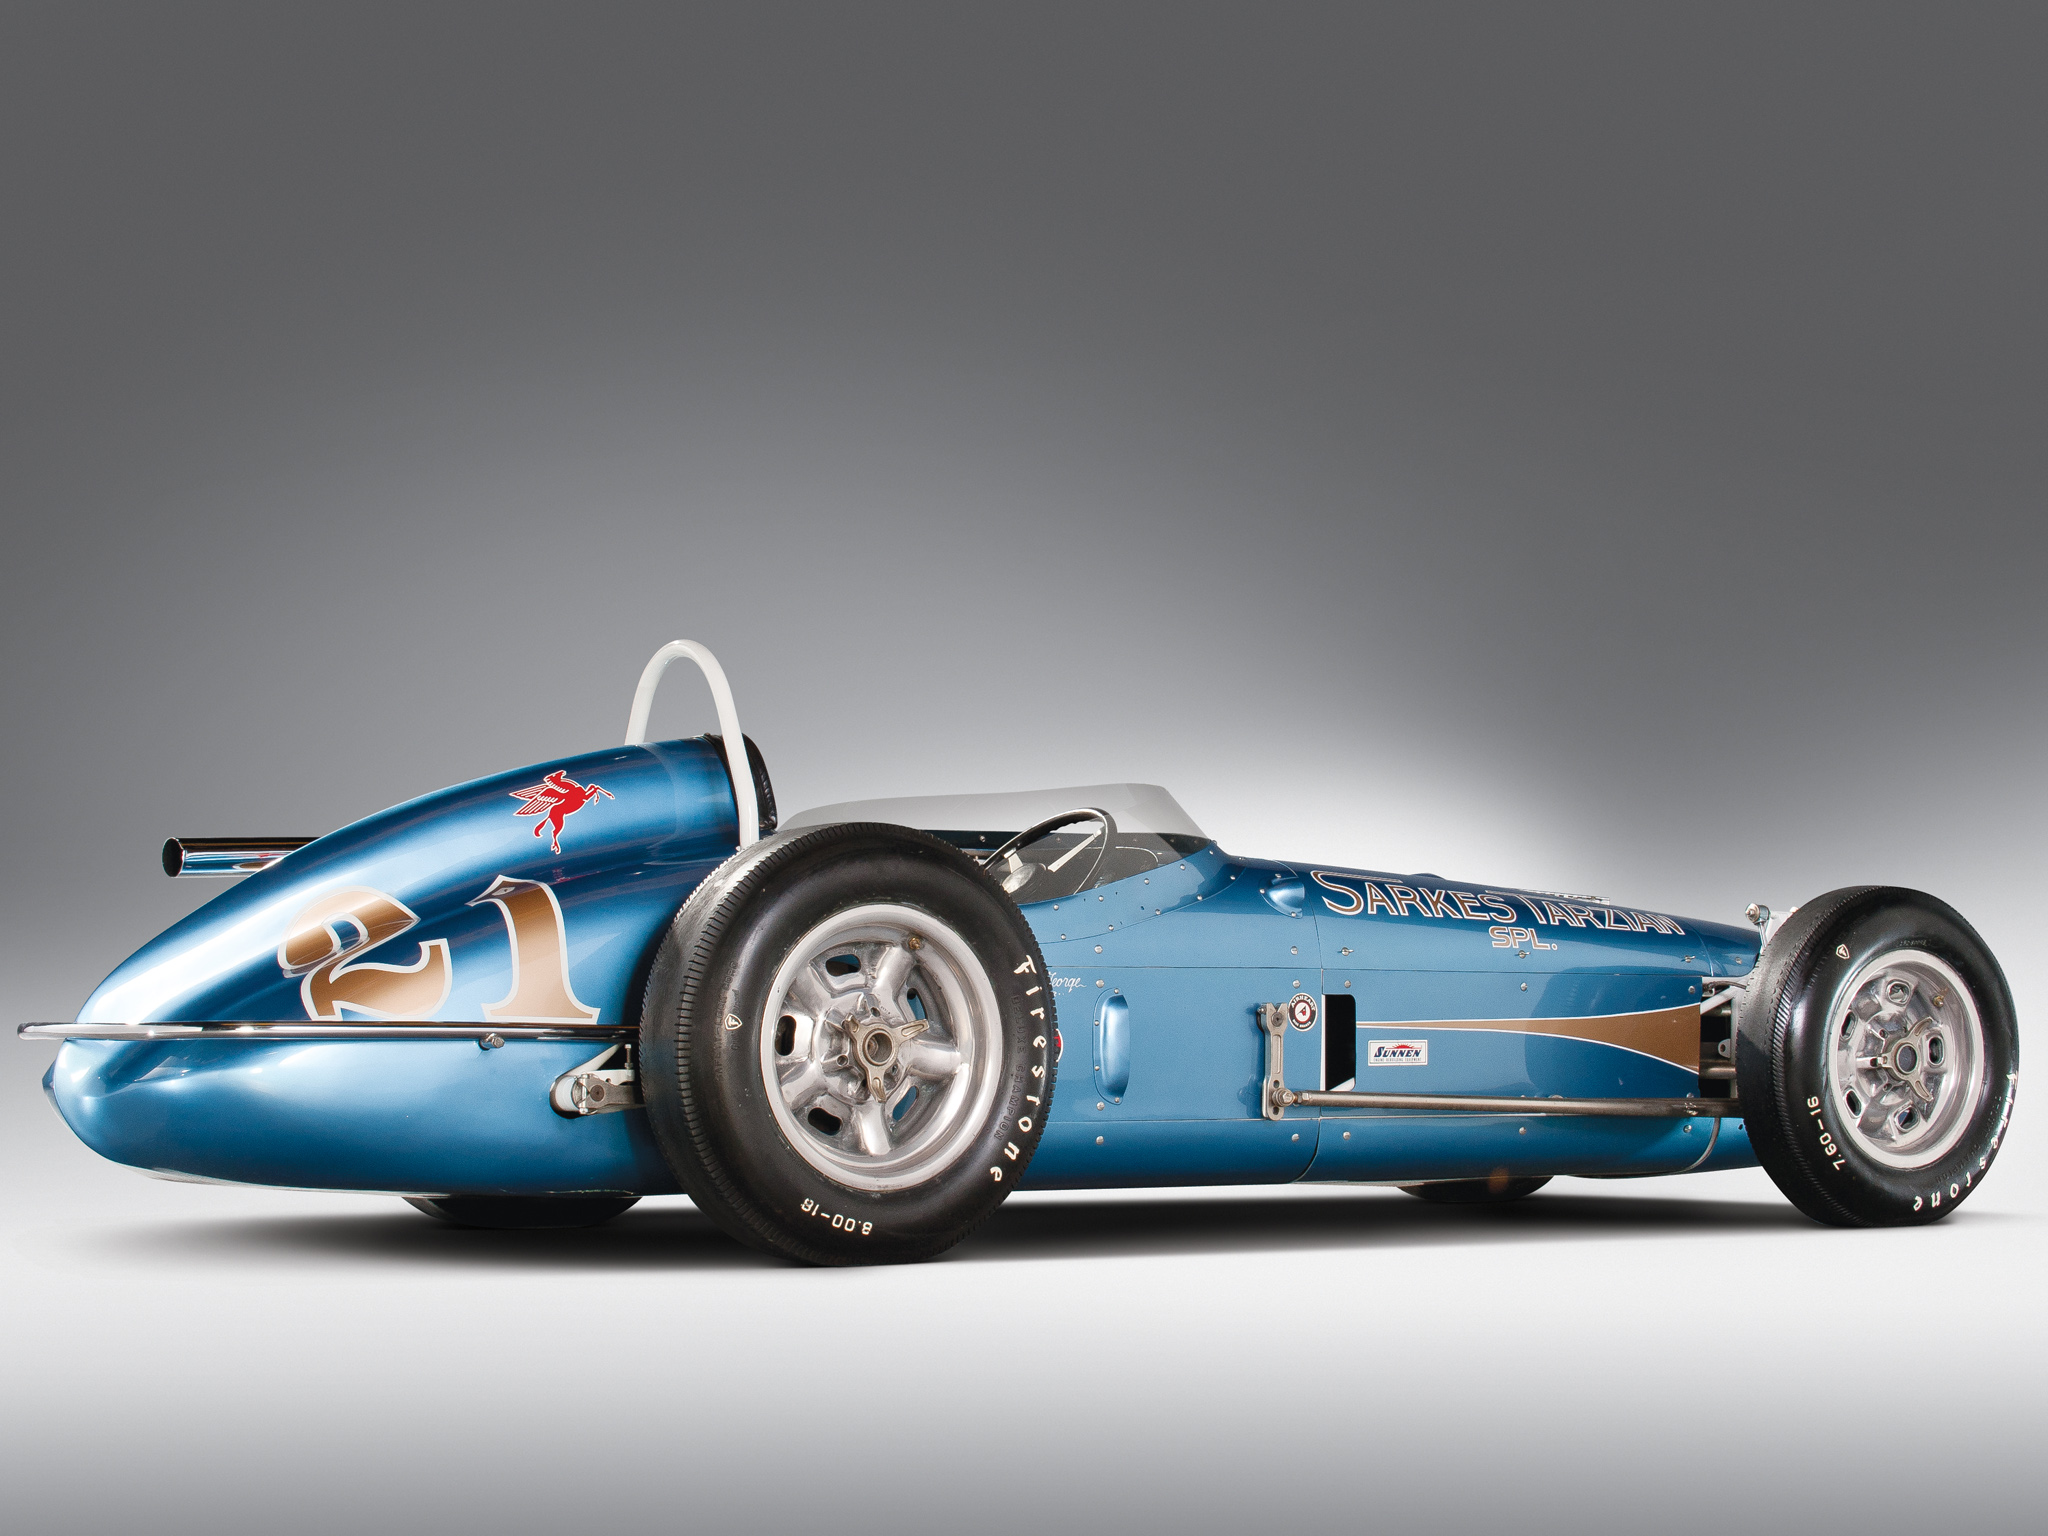 Vintage Indy Cars Indianapolis